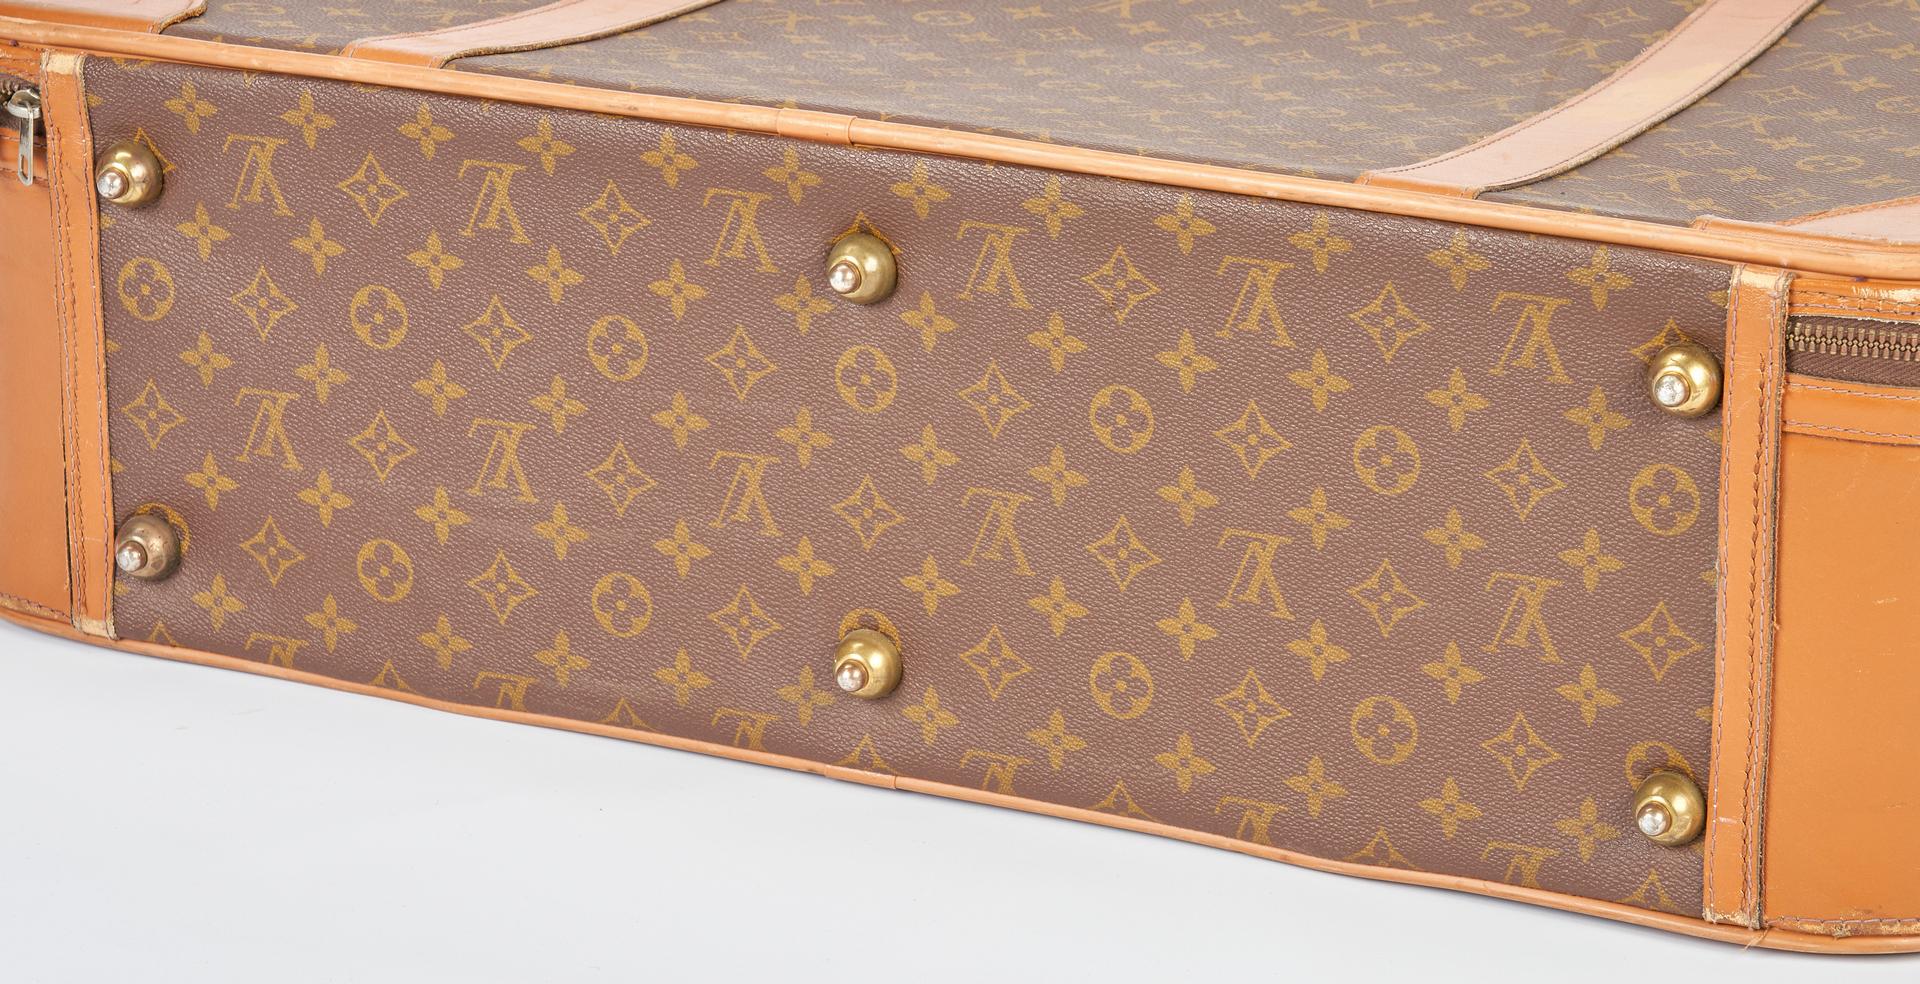 Lot 704: 2 Louis Vuitton Luggage Items